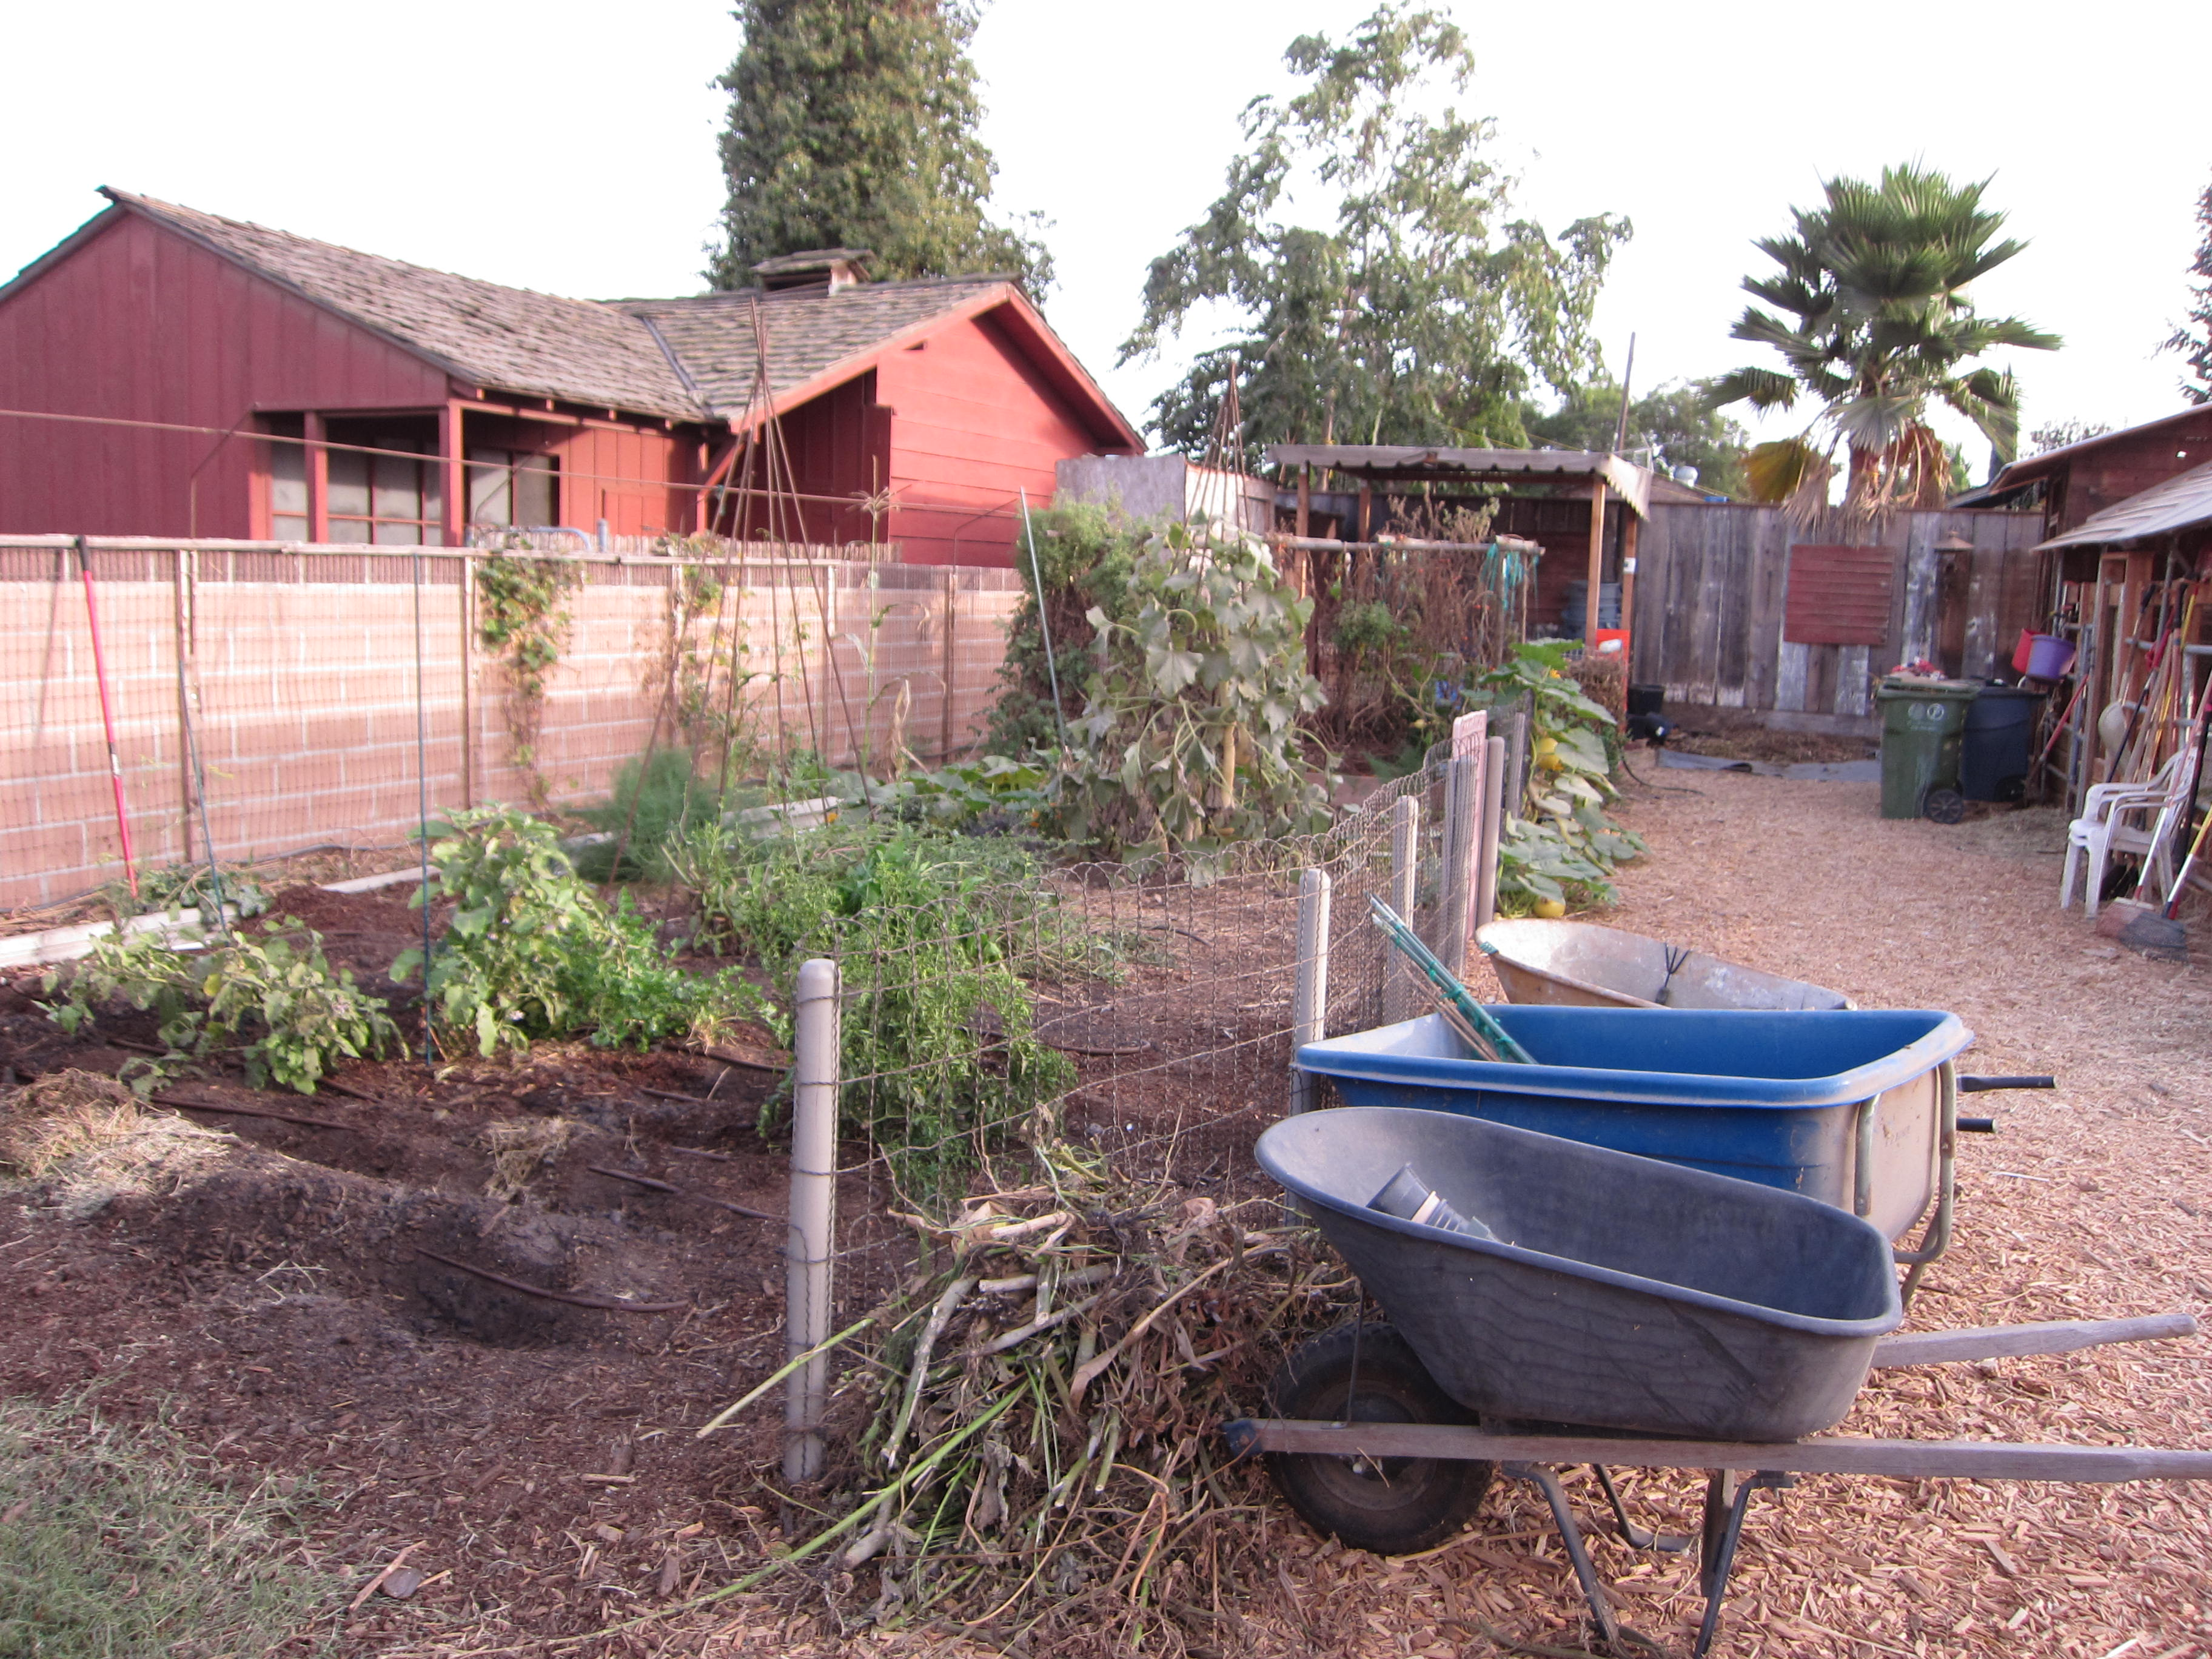 The vegetable garden winds down, but still has squash, basil and other crops.